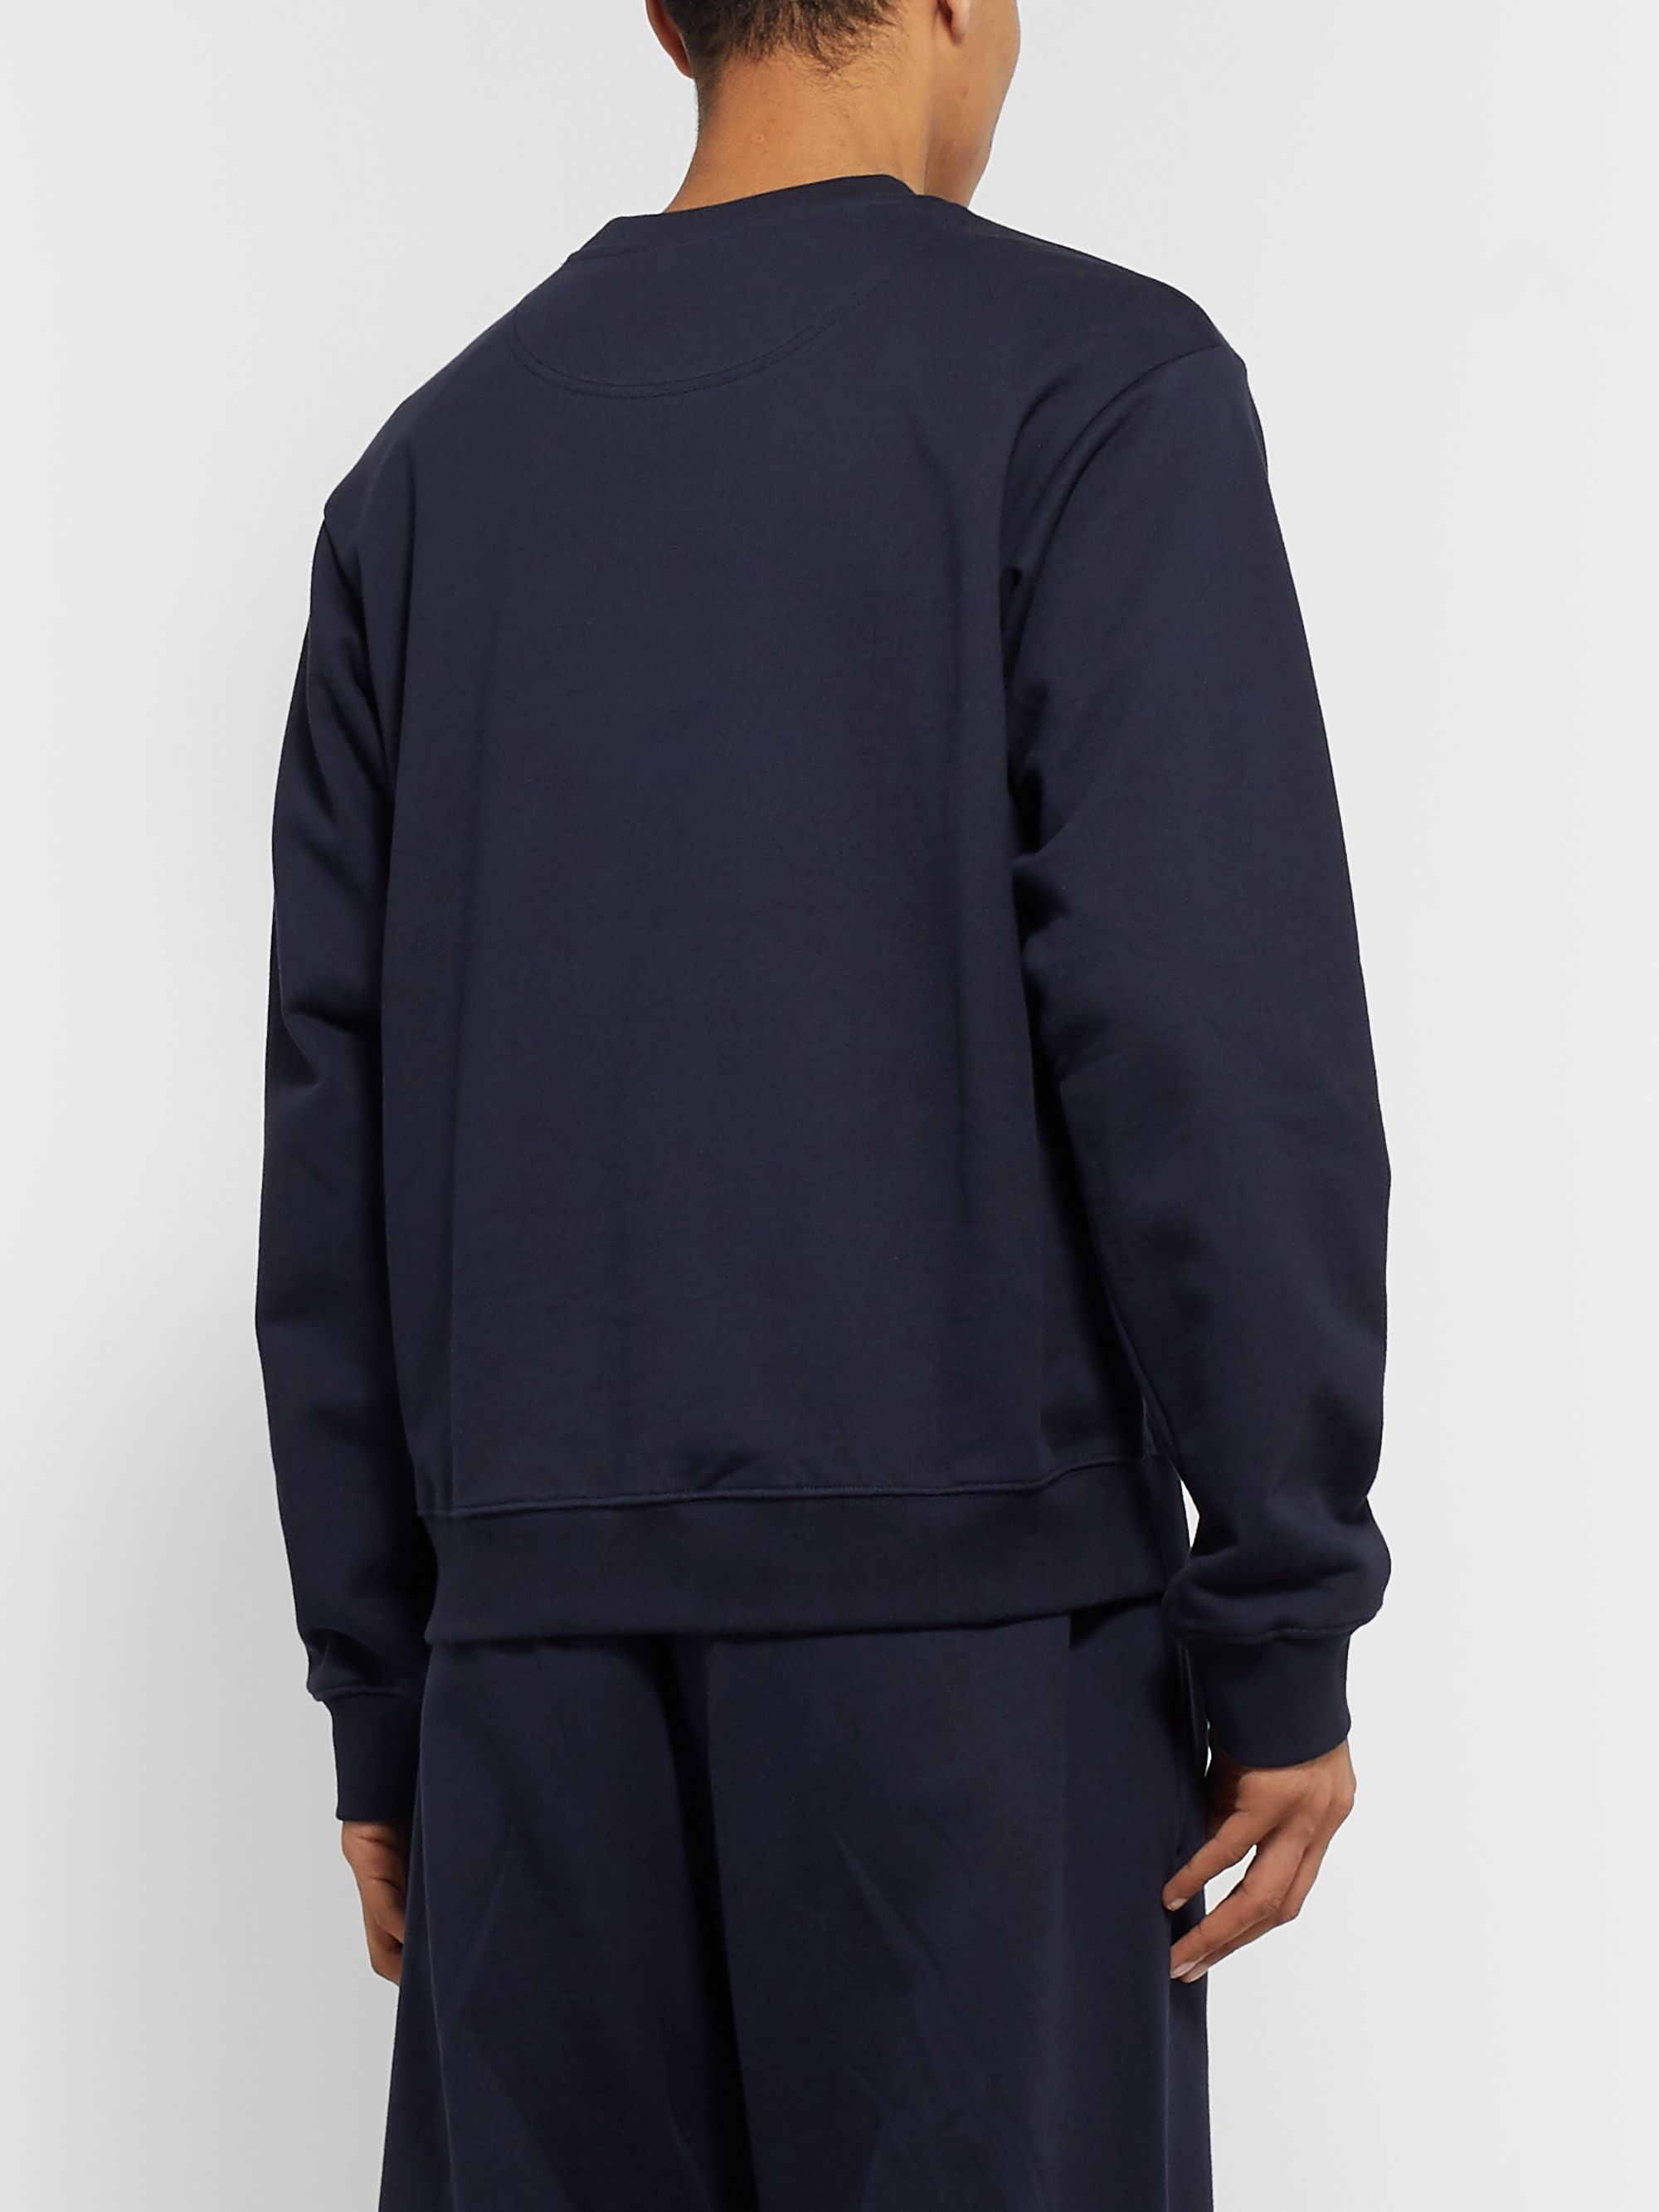 Martine Rose Logo-Embroidered Loopback Cotton-Jersey Sweatshirt